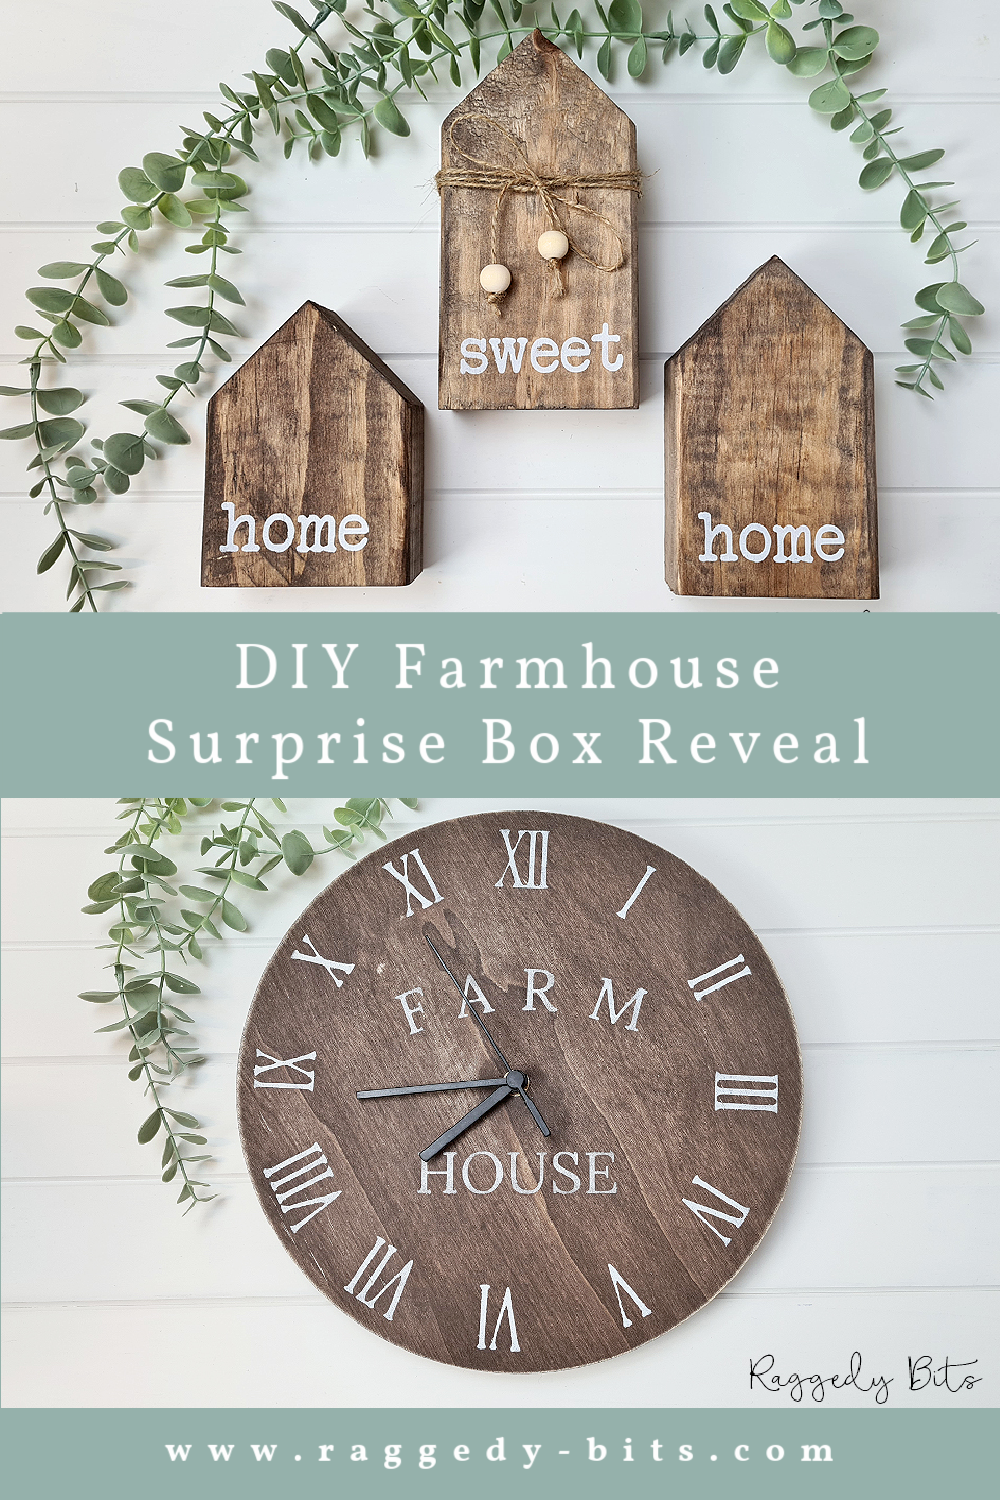 It's that fun time of the month for our DIY Farmhouse Surprise Box Reveal. Come and see what our creatives have been busy creating this month | www.raggedy-bits.com | #raggedybits #diy #surprise #box #farmhouse #fusionmineralpaint